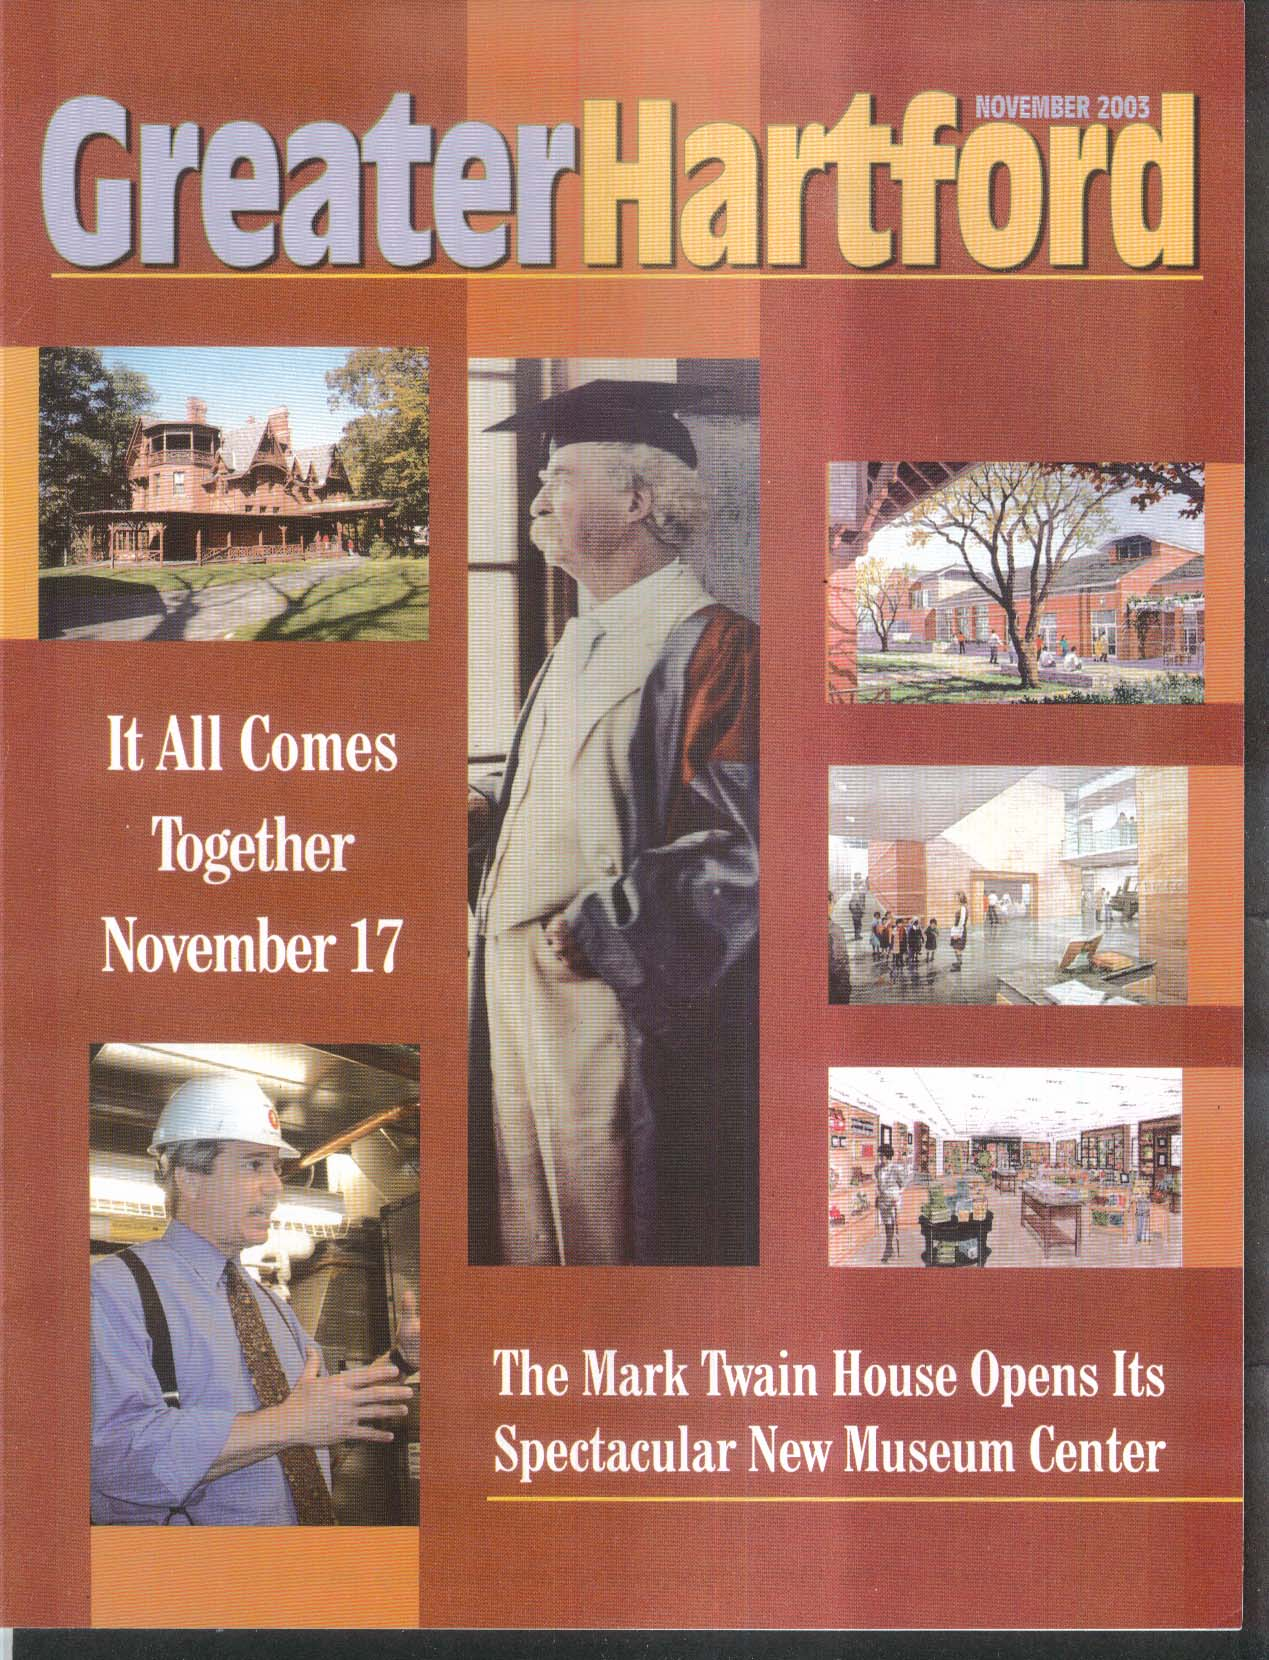 GREATER HARTFORD Mark Twain House Museu Center Dr Lothar Candels 11 2003